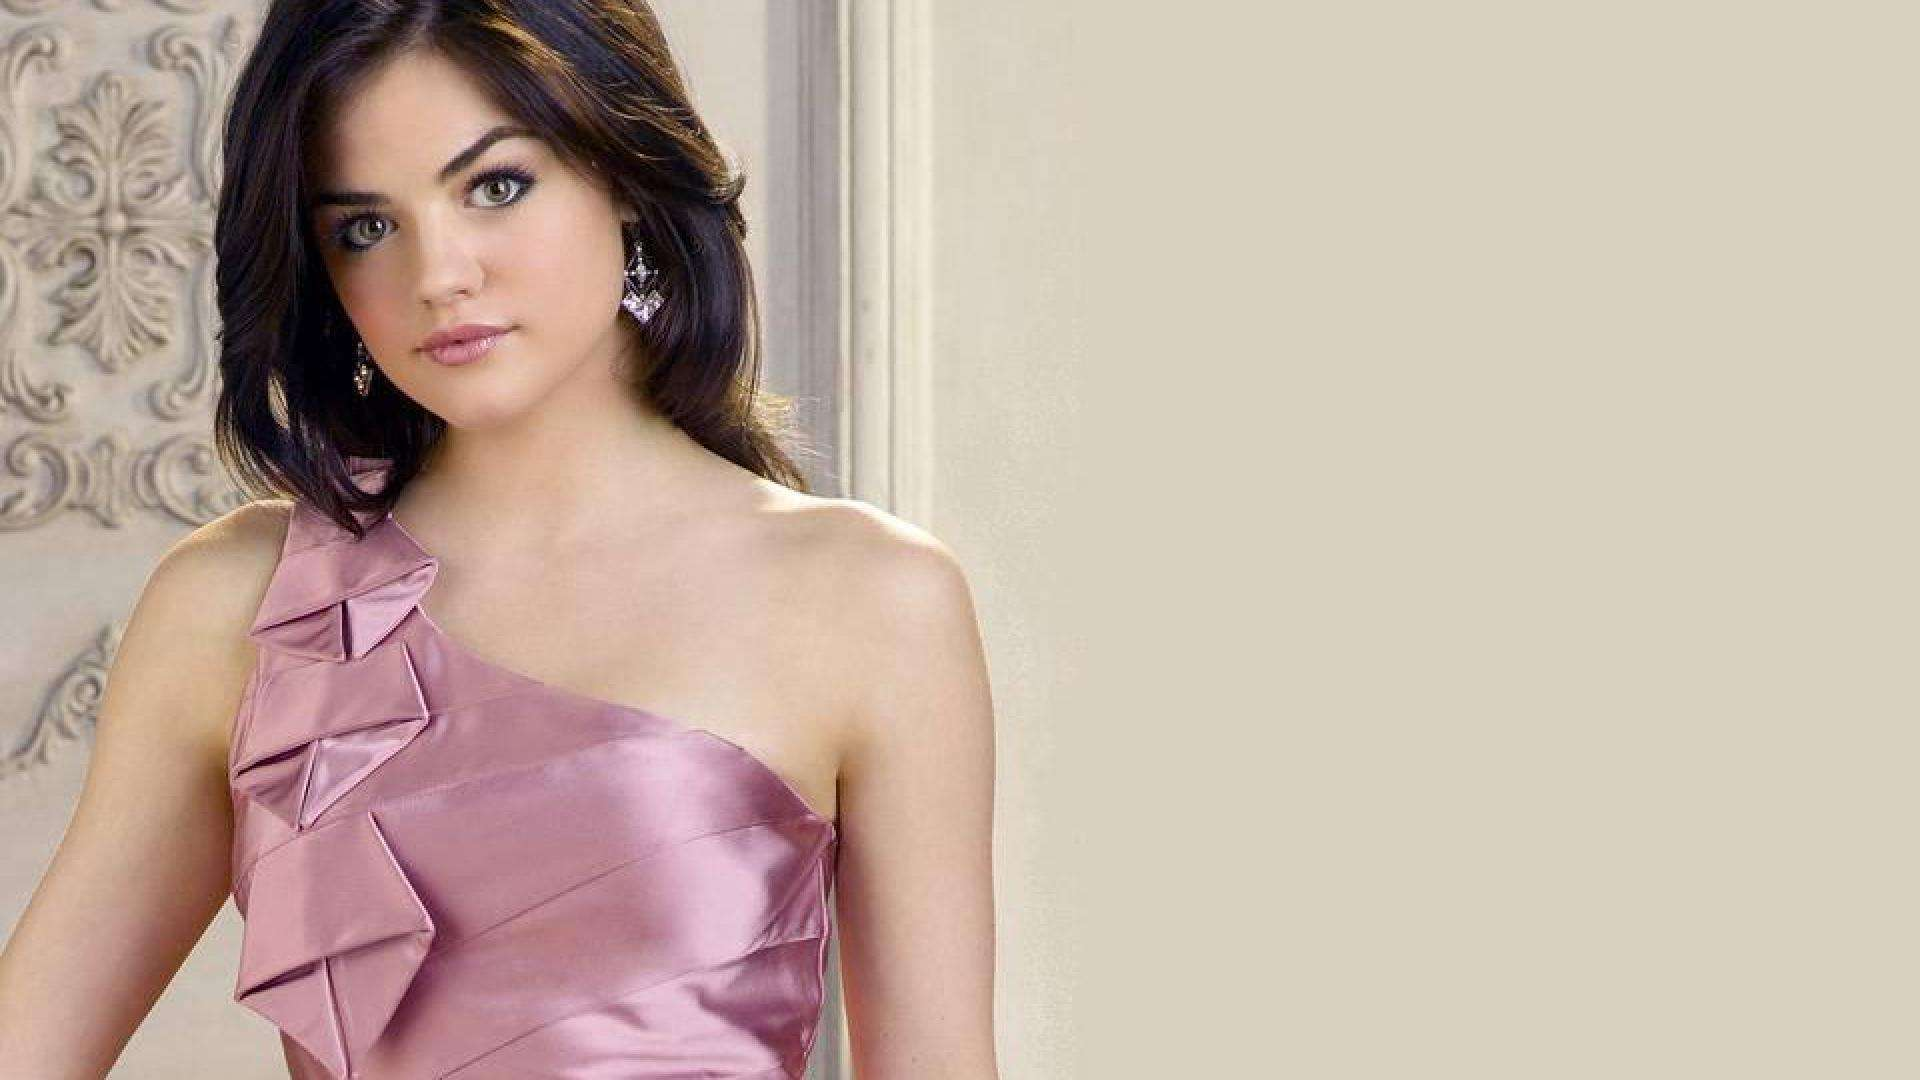 Lucy Hale Wallpapers High Quality | Download Free